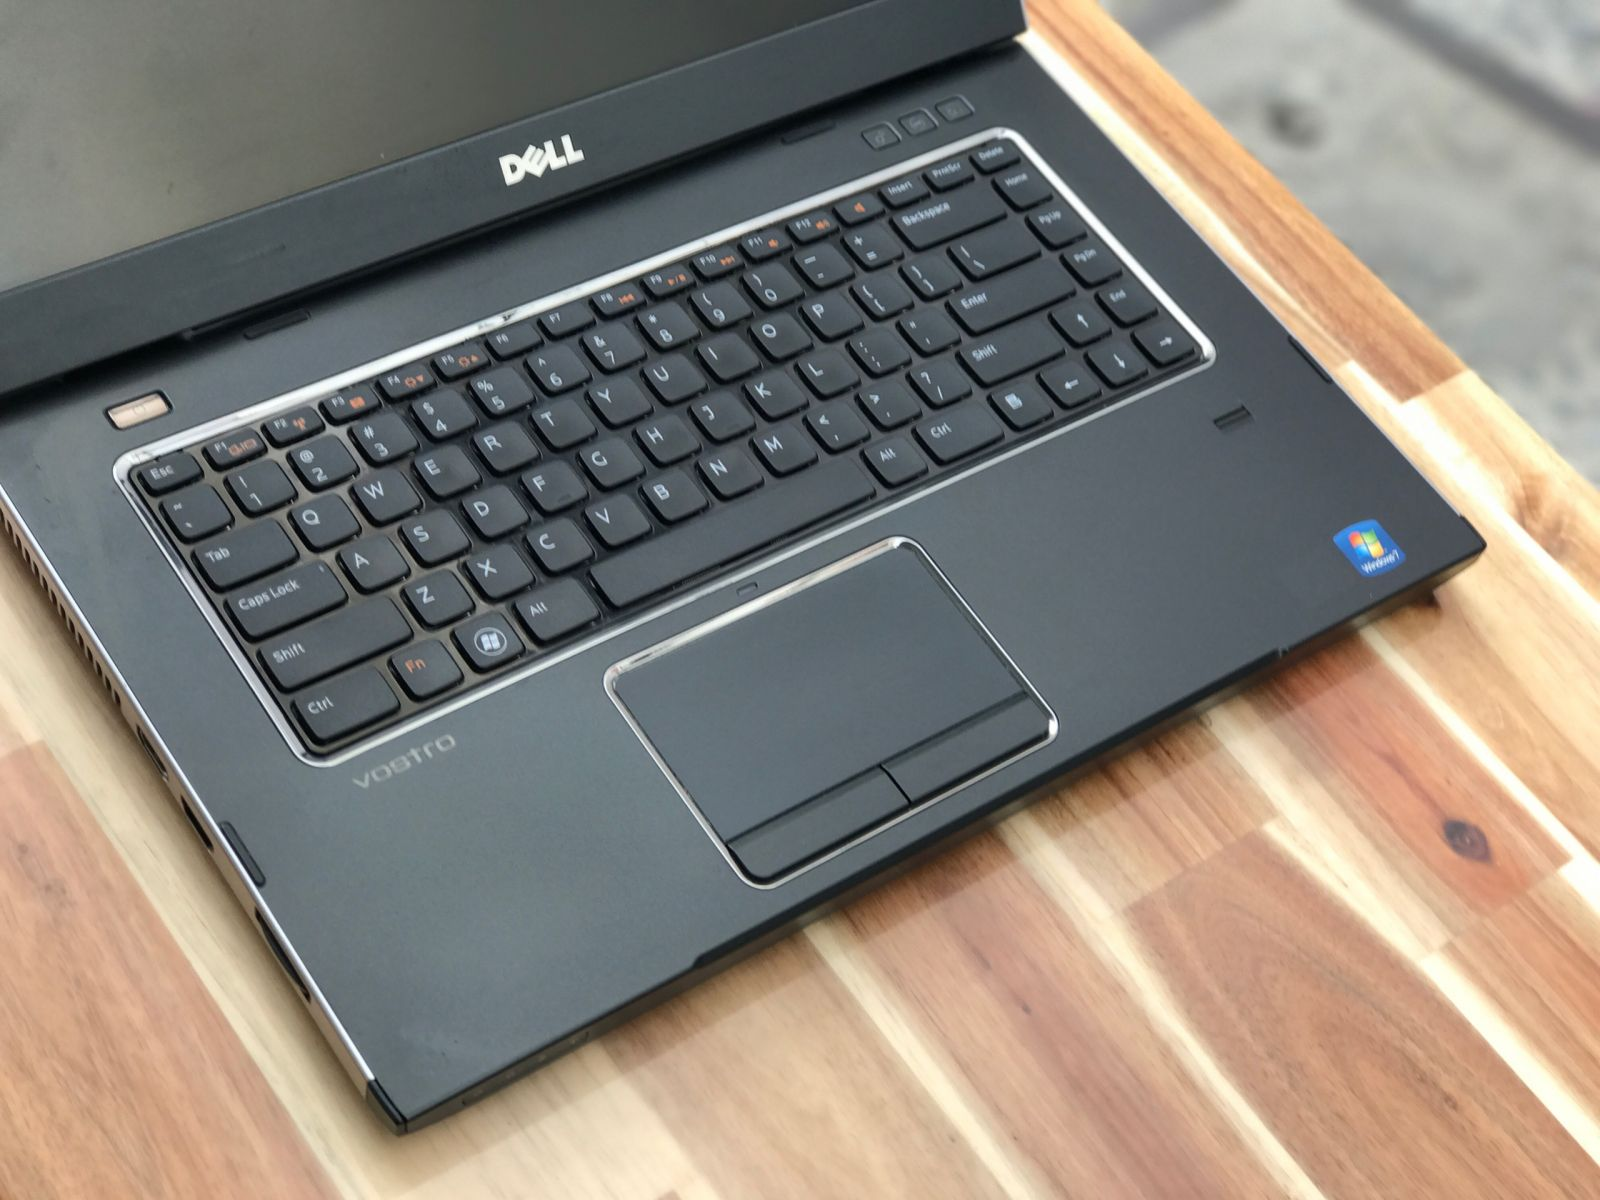 Laptop Dell Vostro 3550 / i7 Sandy Bridge/ 8G/ SSD128-500G/ 15in/ Vga rời/ Win 10/ Giá rẻ3